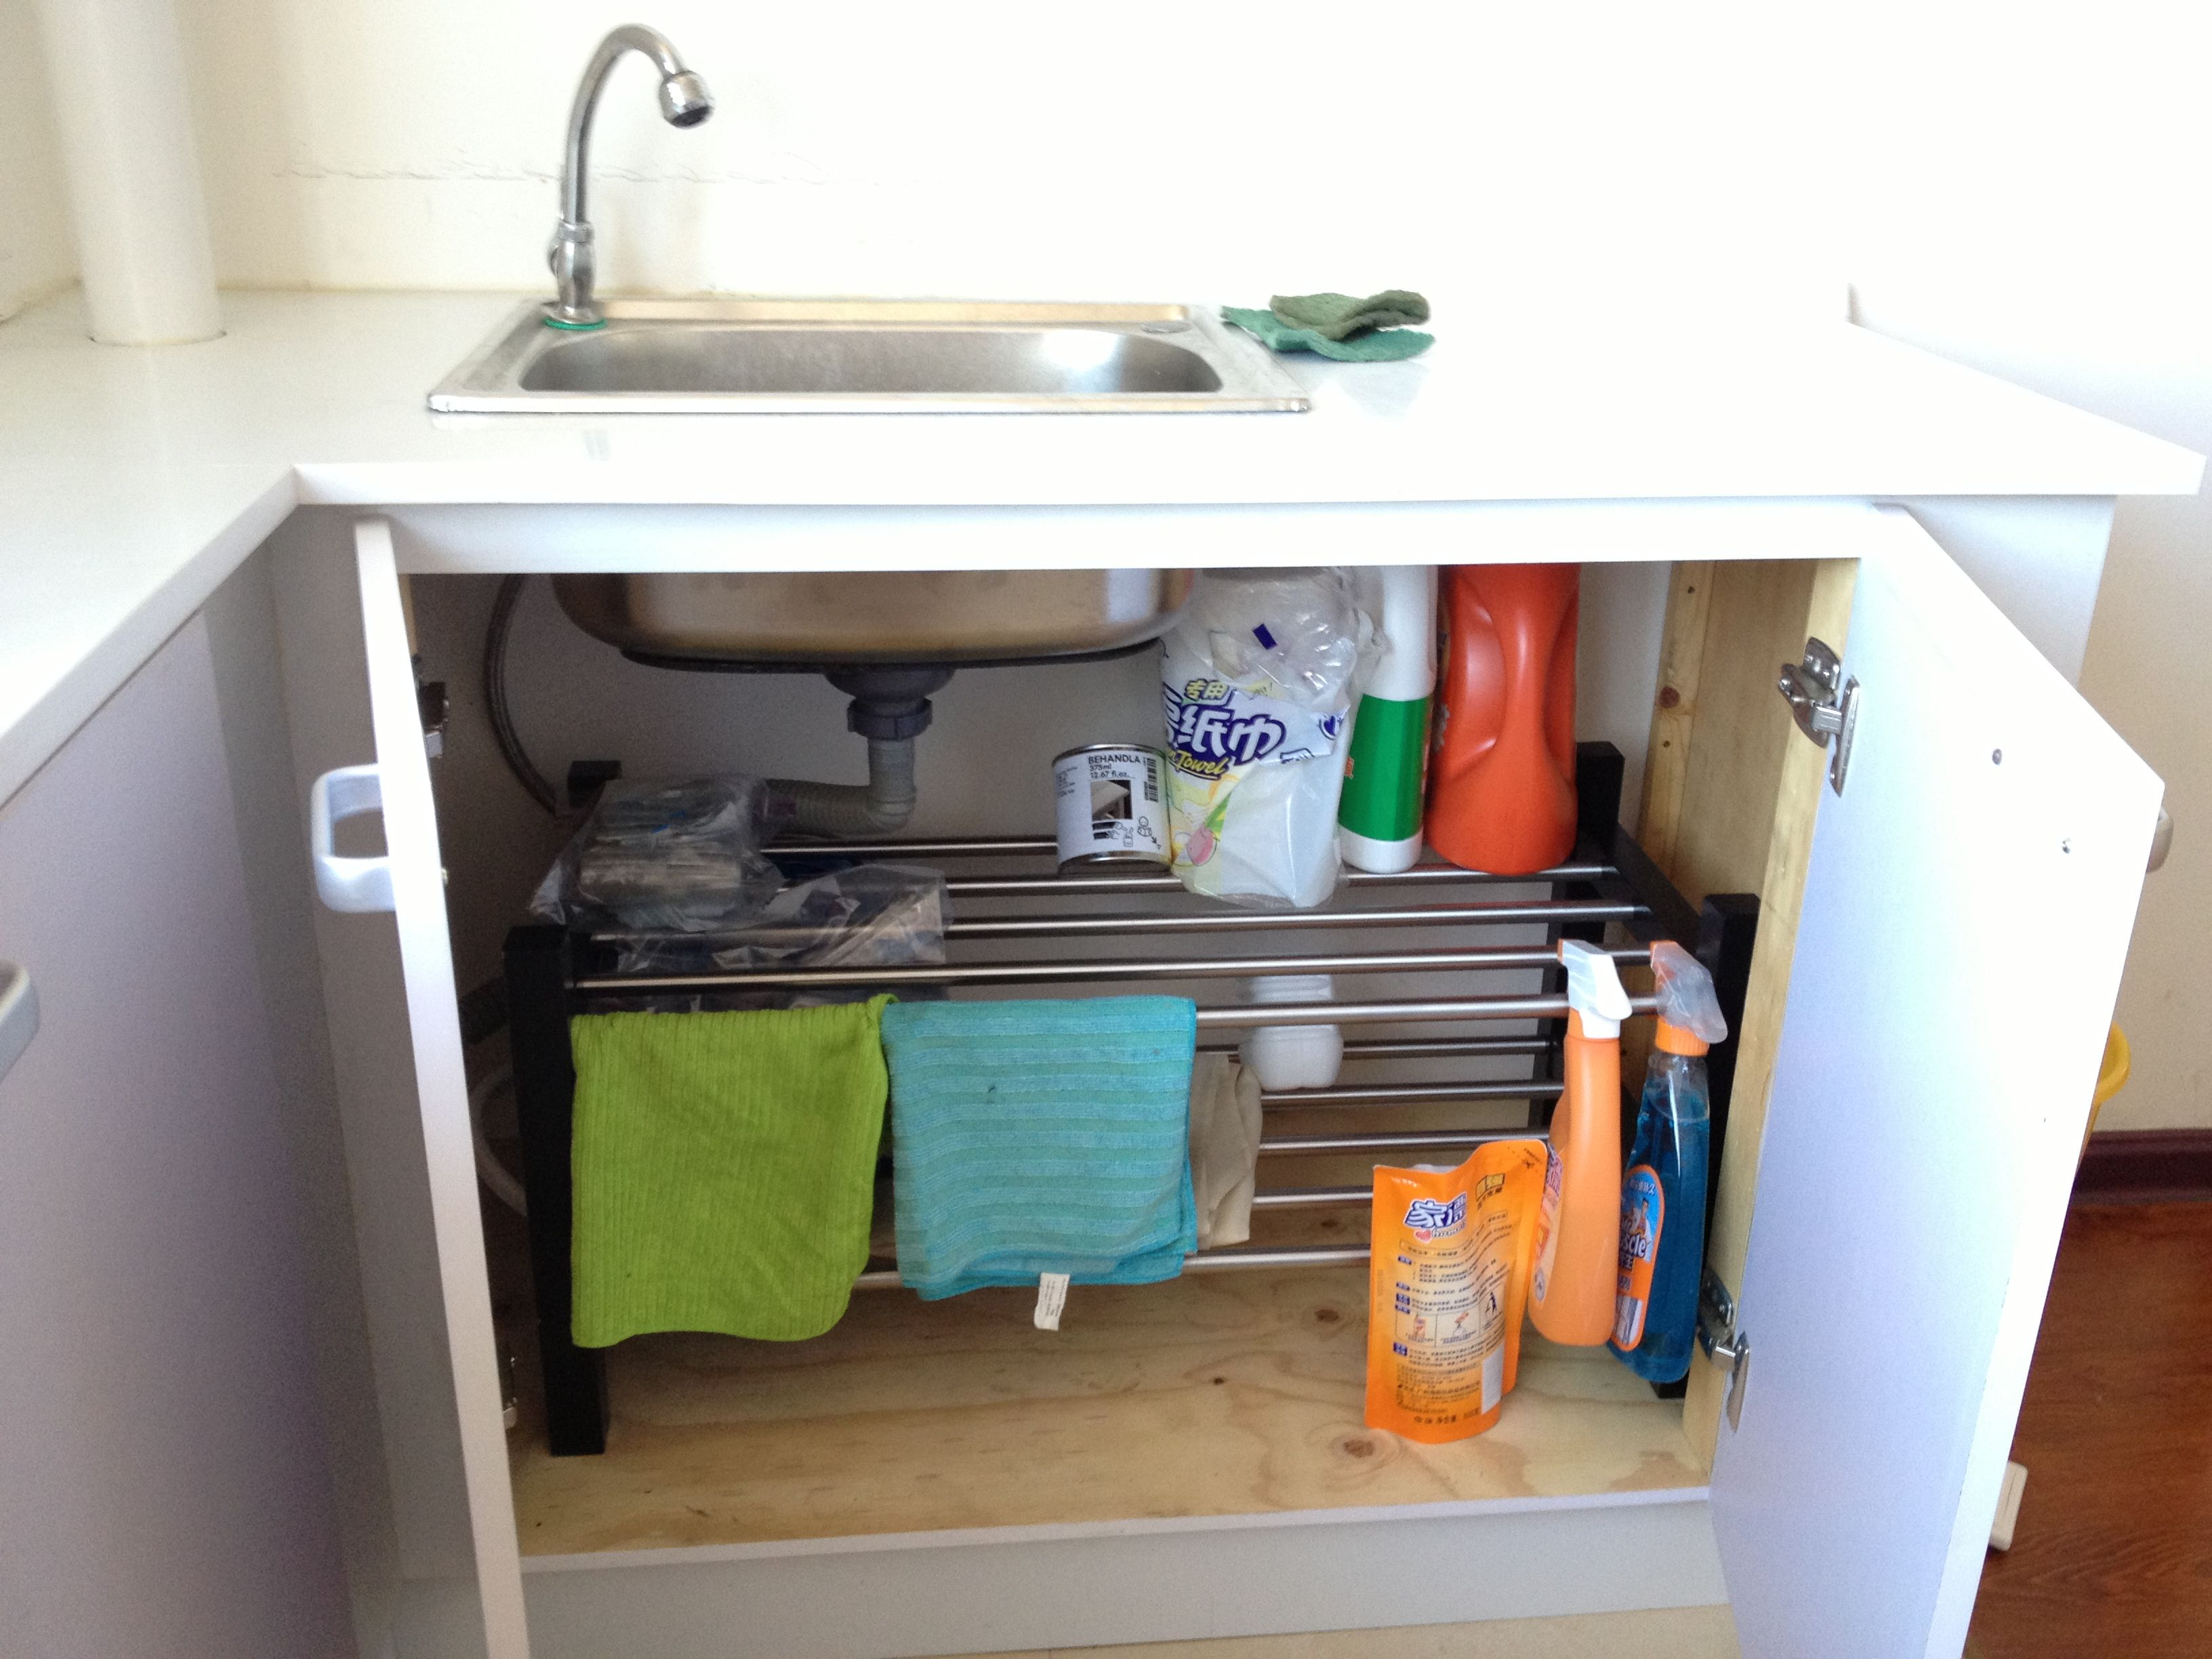 When You Have Large Cabinets Without Shelves Installed Like My Husband And I Do You Lose Your Ve Large Cabinet Kitchen Sink Design Kitchen Sink Organization